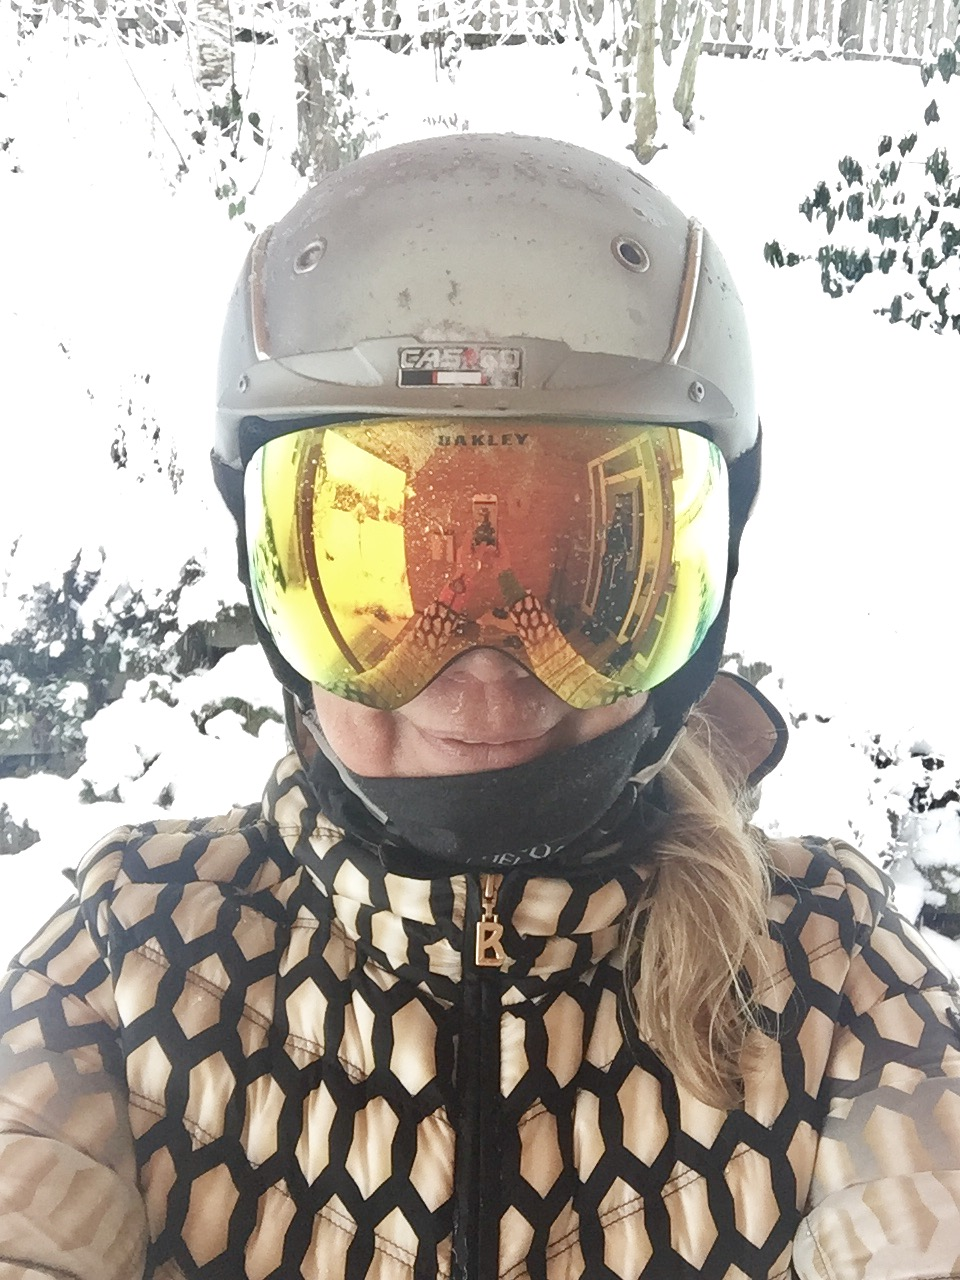 Me all wet after skiing in snowfall, Flachau, December 2017